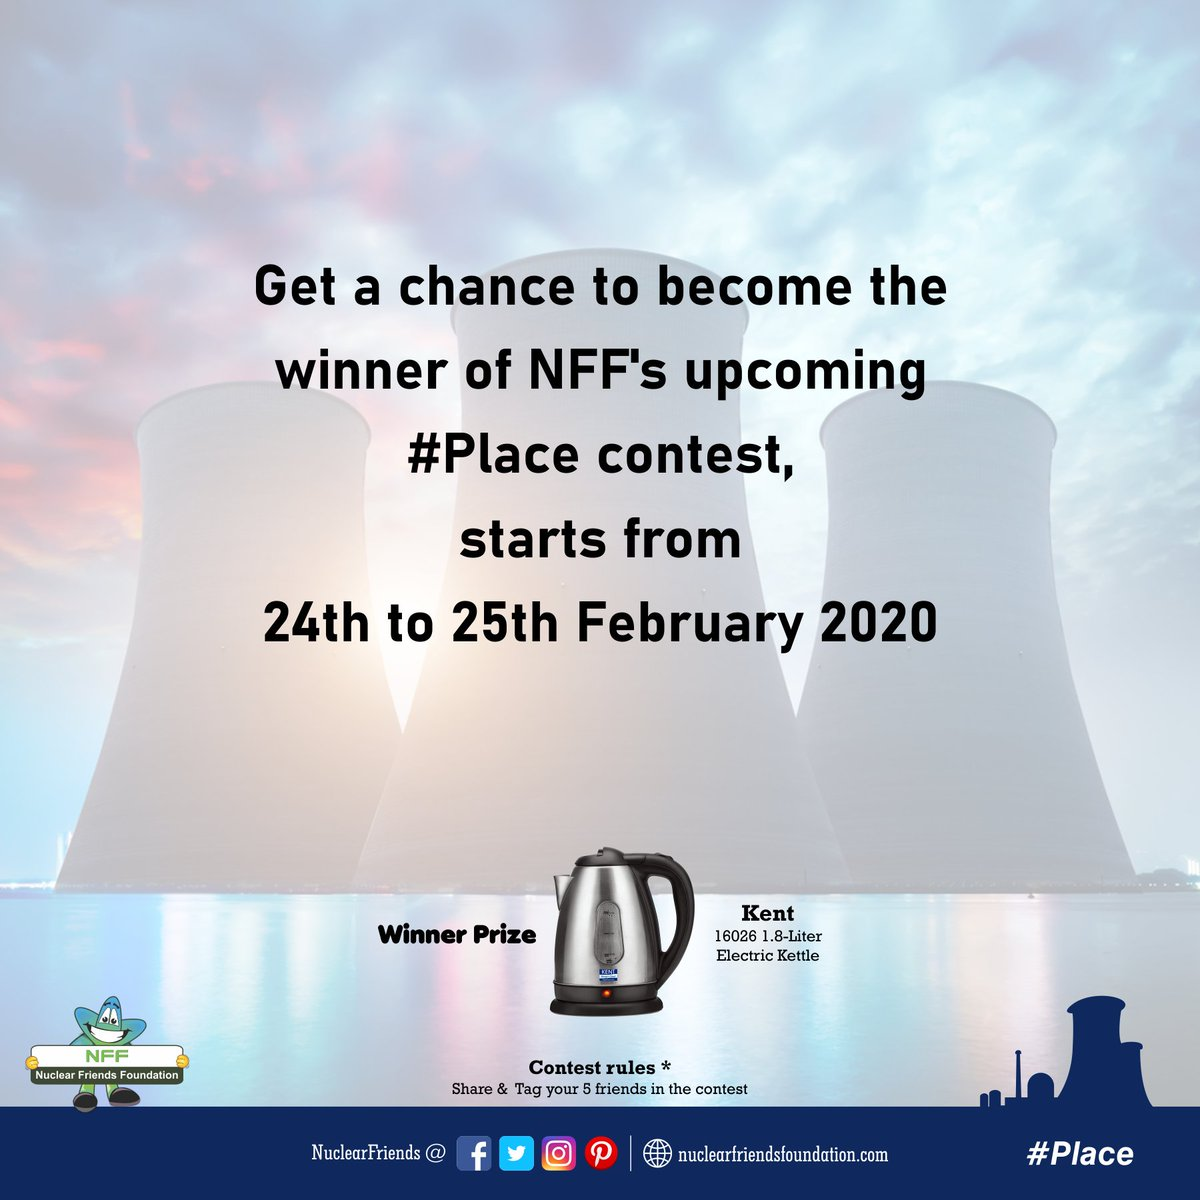 #ContestAlert Get a chance to become the winner of NFF's upcoming #Place contest, starts from 24th to 25th Feb 2020  Reach us @ http://nuclearfriendsfoundation.com  #Contest #like #RT #comment #chance #Win #prizes #Today #goodluck #entertowin #FridayFeeling #FridayThoughts #Mahashivratri